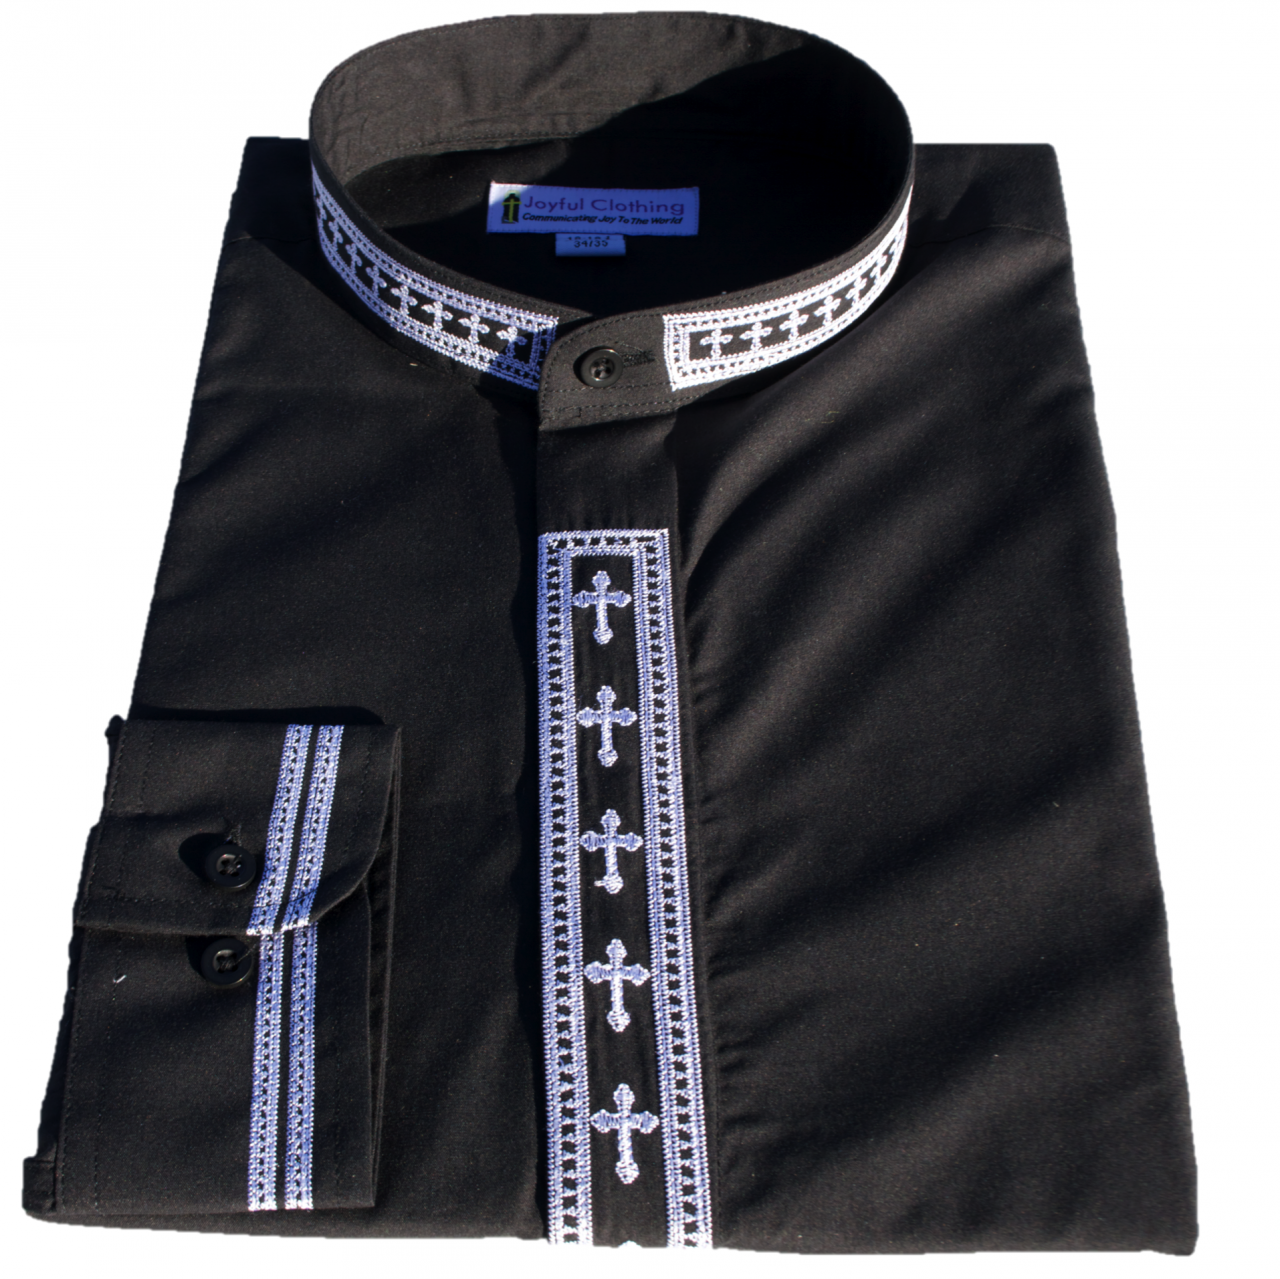 303. Men's Long-Sleeve Clergy Shirt With Fine Embroidery - Black/White